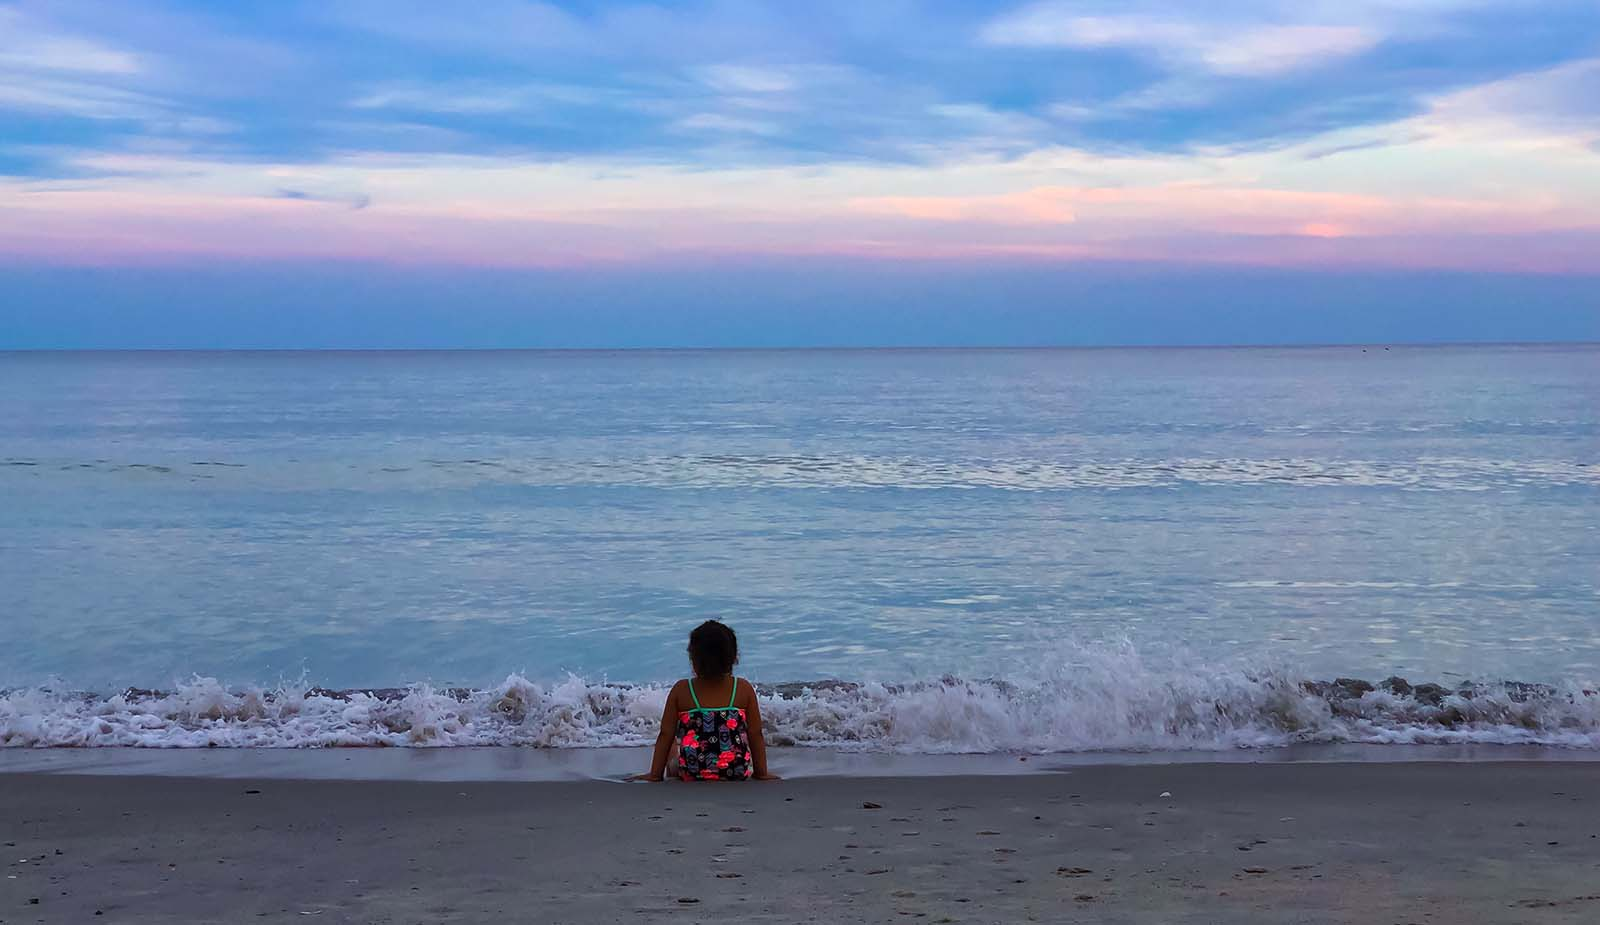 Little girl on beach at sunrise with cotton candy sky